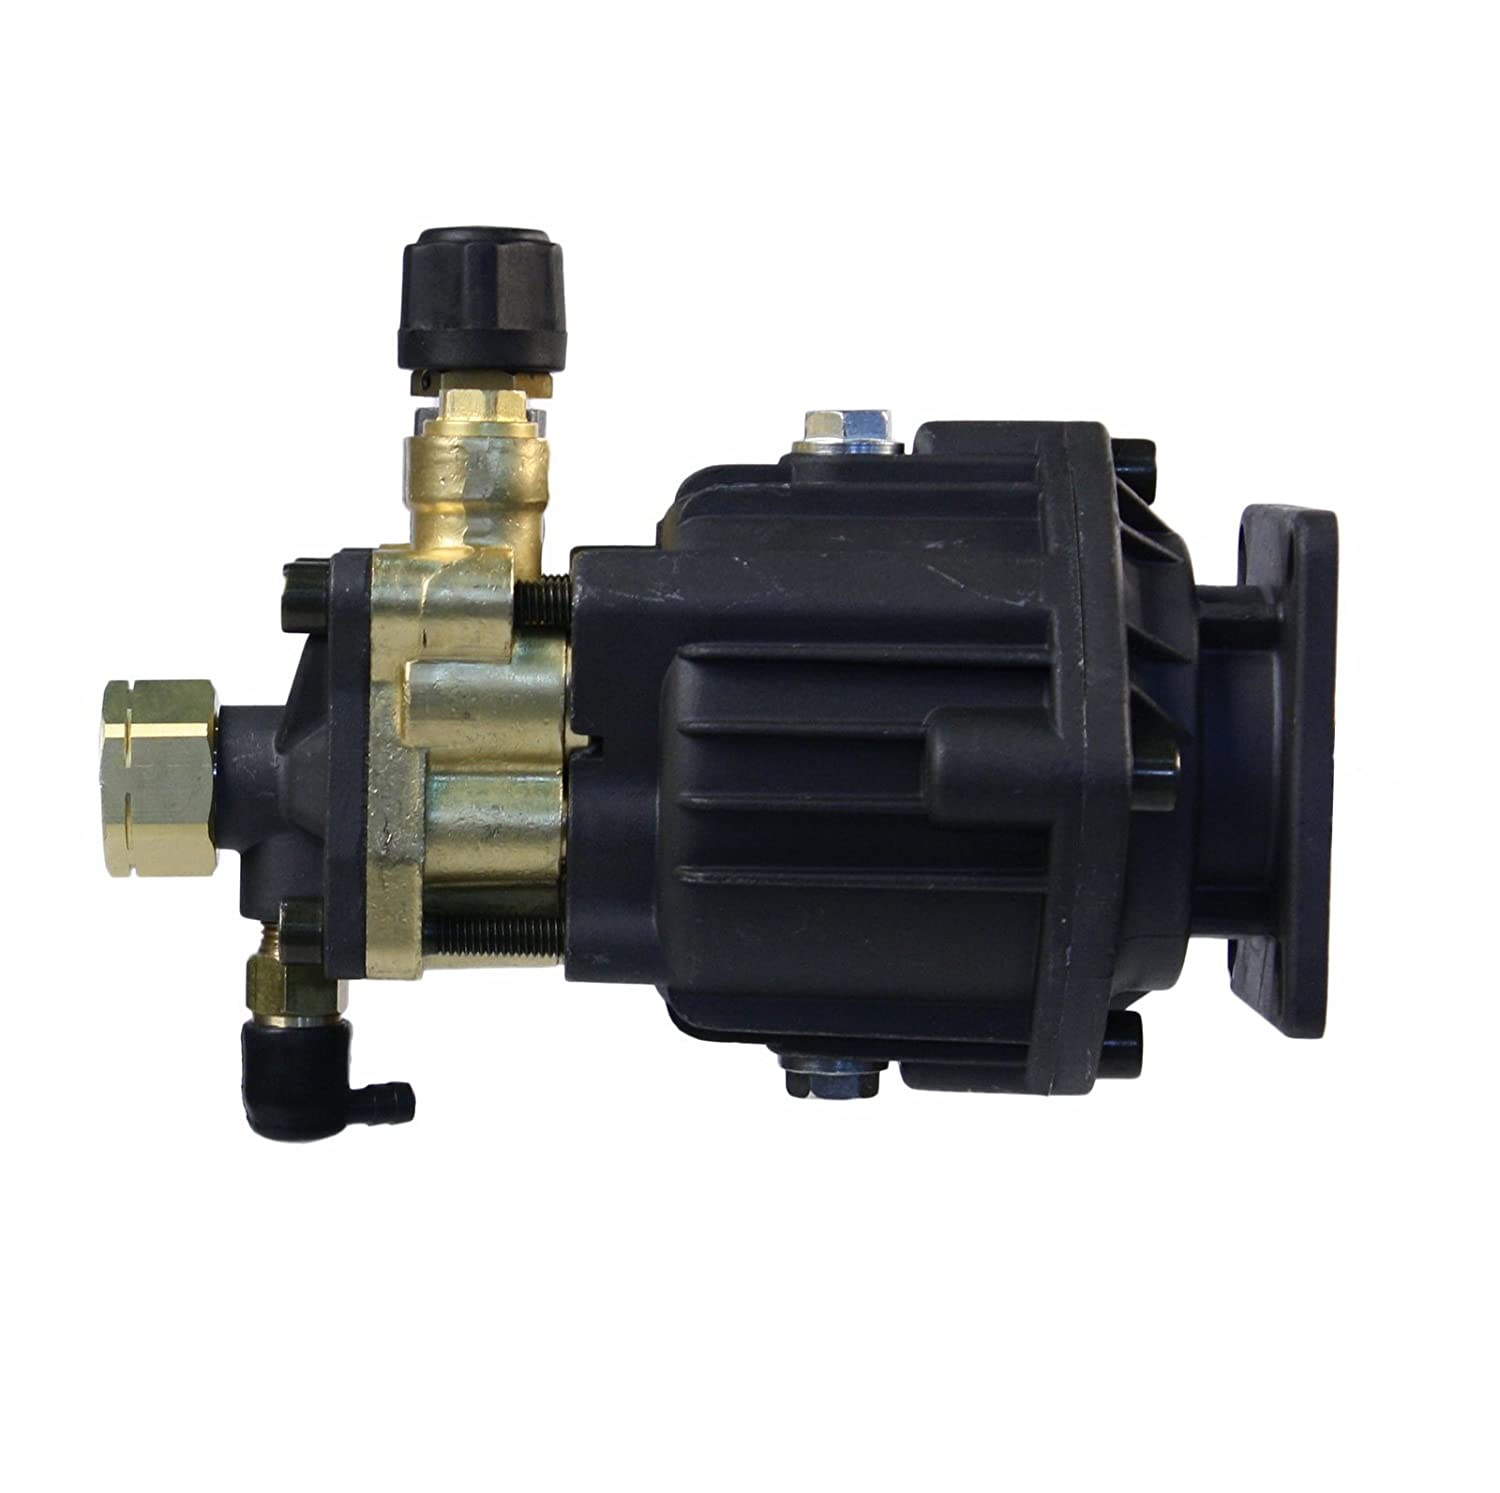 Eope Axial High Pressure Power Washer Pump 2800 Psi 65 Hp Fits Cat Wiring Harness General Ar Etd